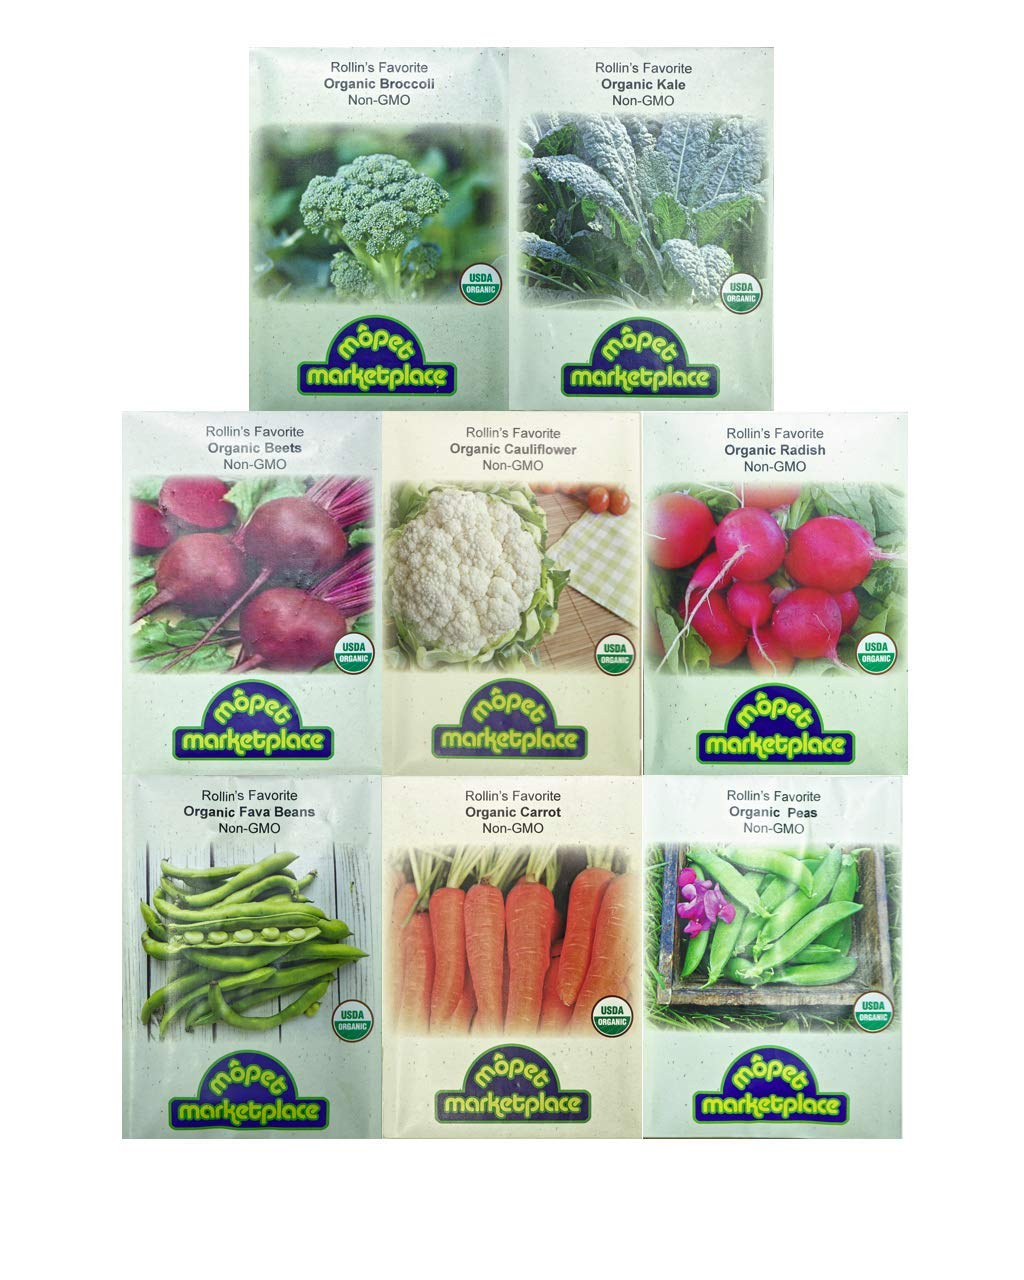 Premium Winter Vegetable Seeds Collection.Certified Organic Non-GMO Heirloom Seeds USDA Lab Tested. Broccoli, Beet, Carrot, Cauliflower, Fava Bean, Kale, Pea, Radish. Gardener & Chef Favorites! by Mopet Marketplace